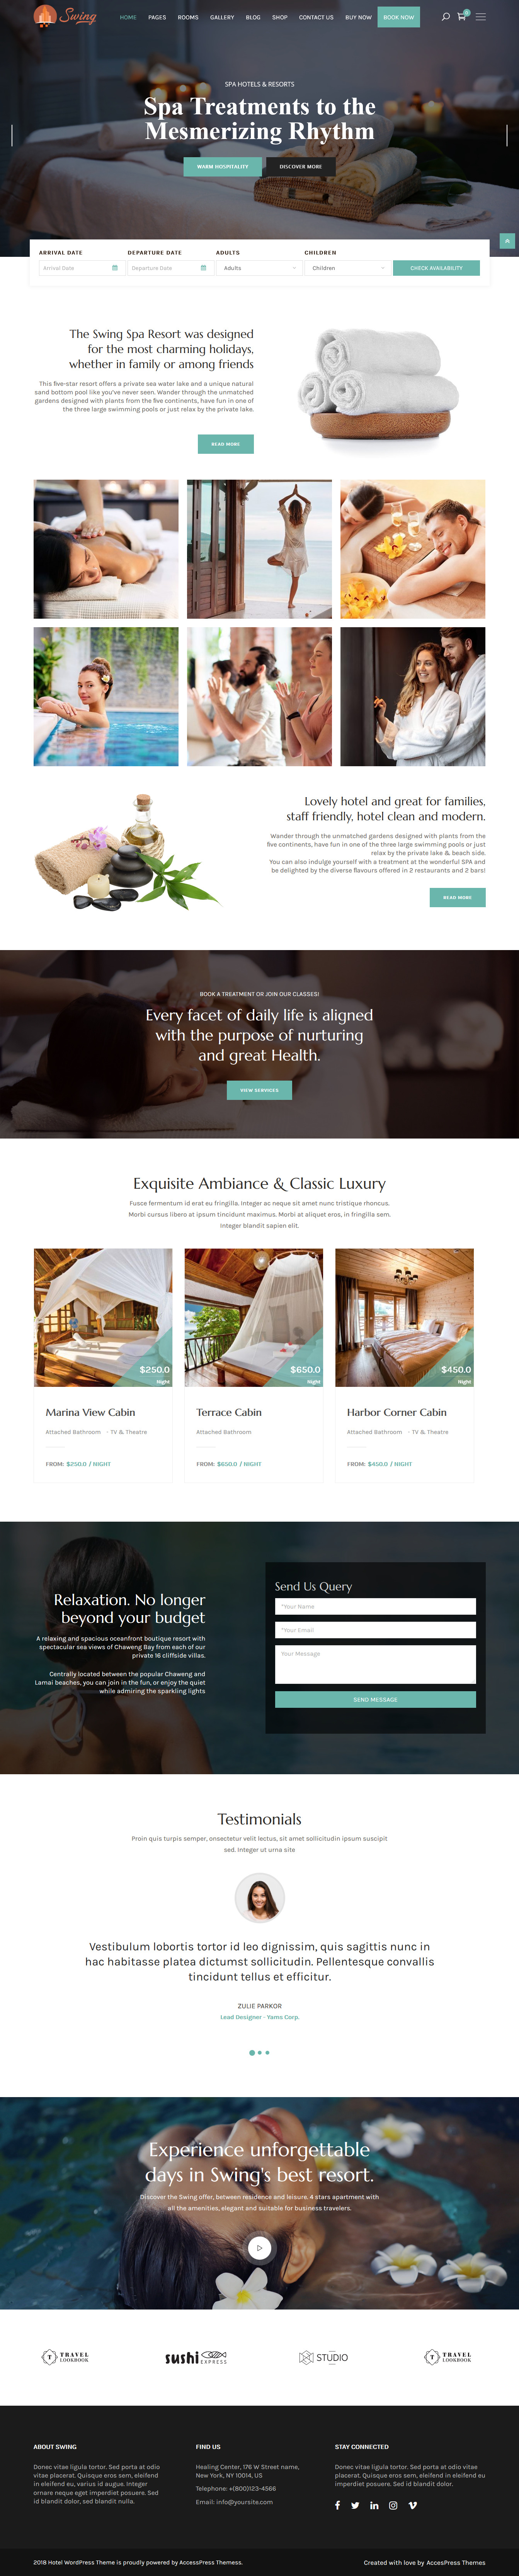 swing hotel and resort wordpress theme demo 2